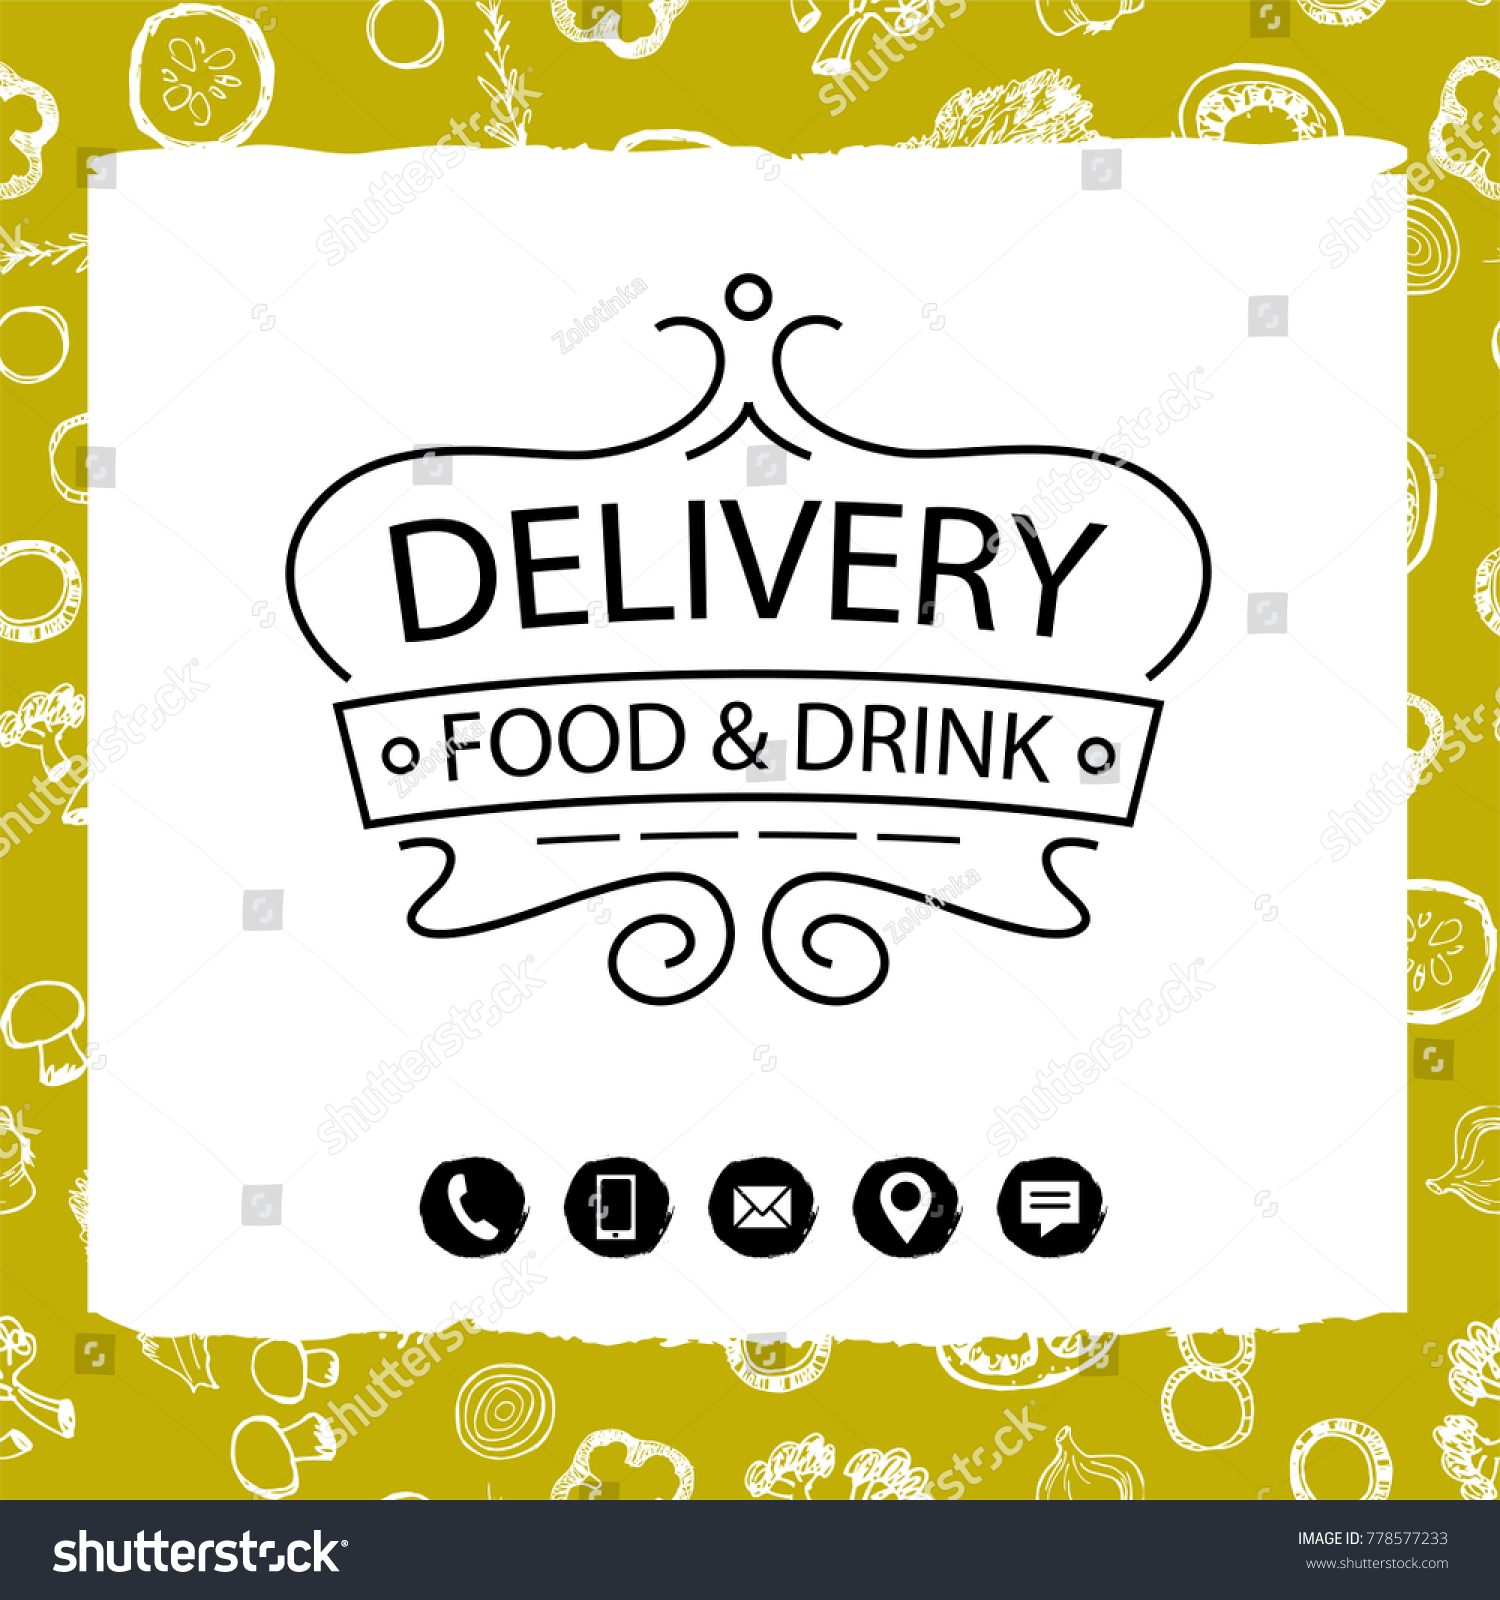 luxury silhouette crown food drink delivery stock vector royalty